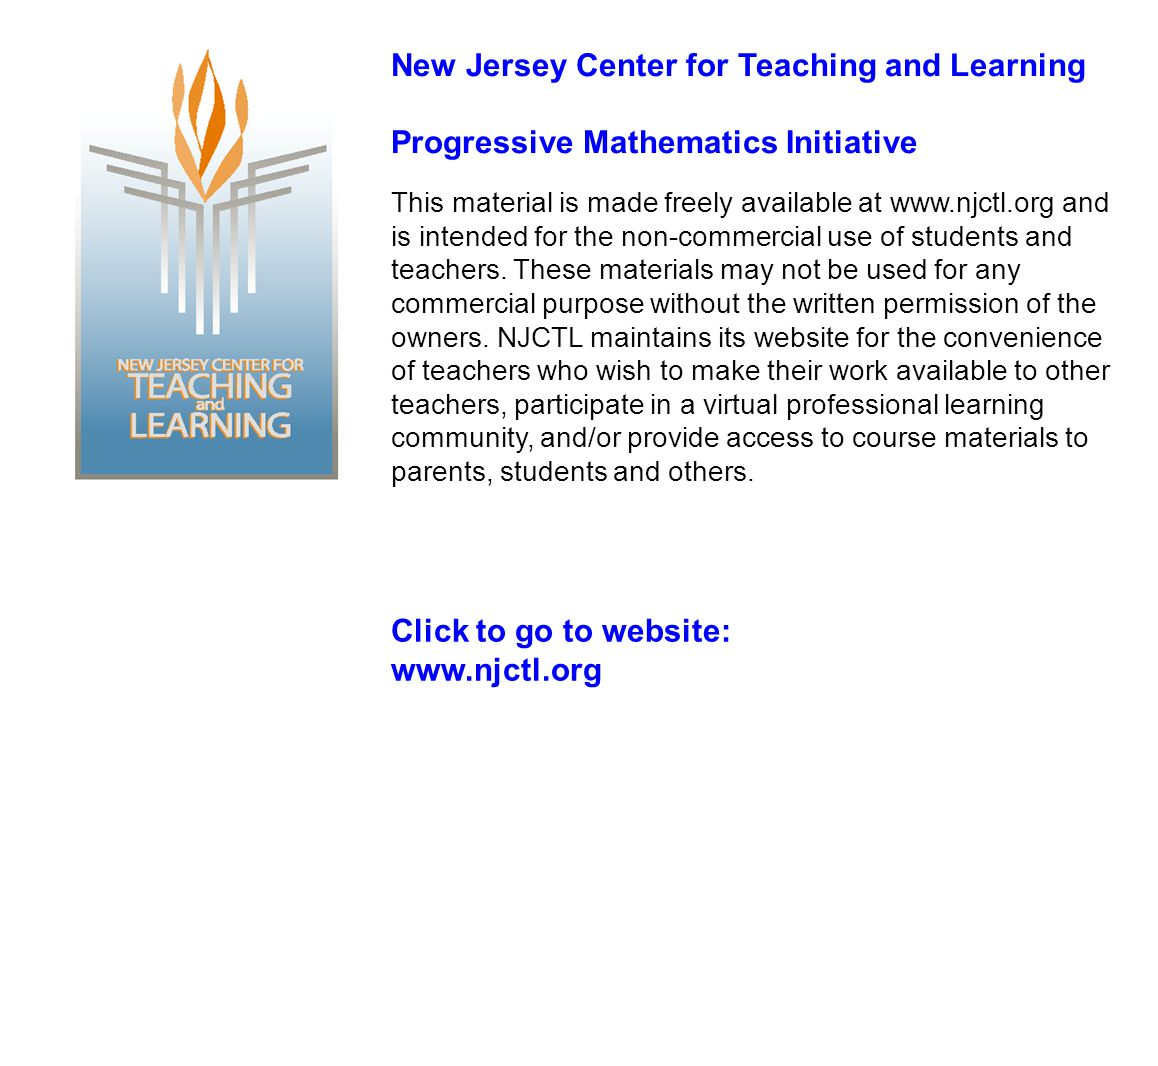 New Jersey Center for Teaching and Learning